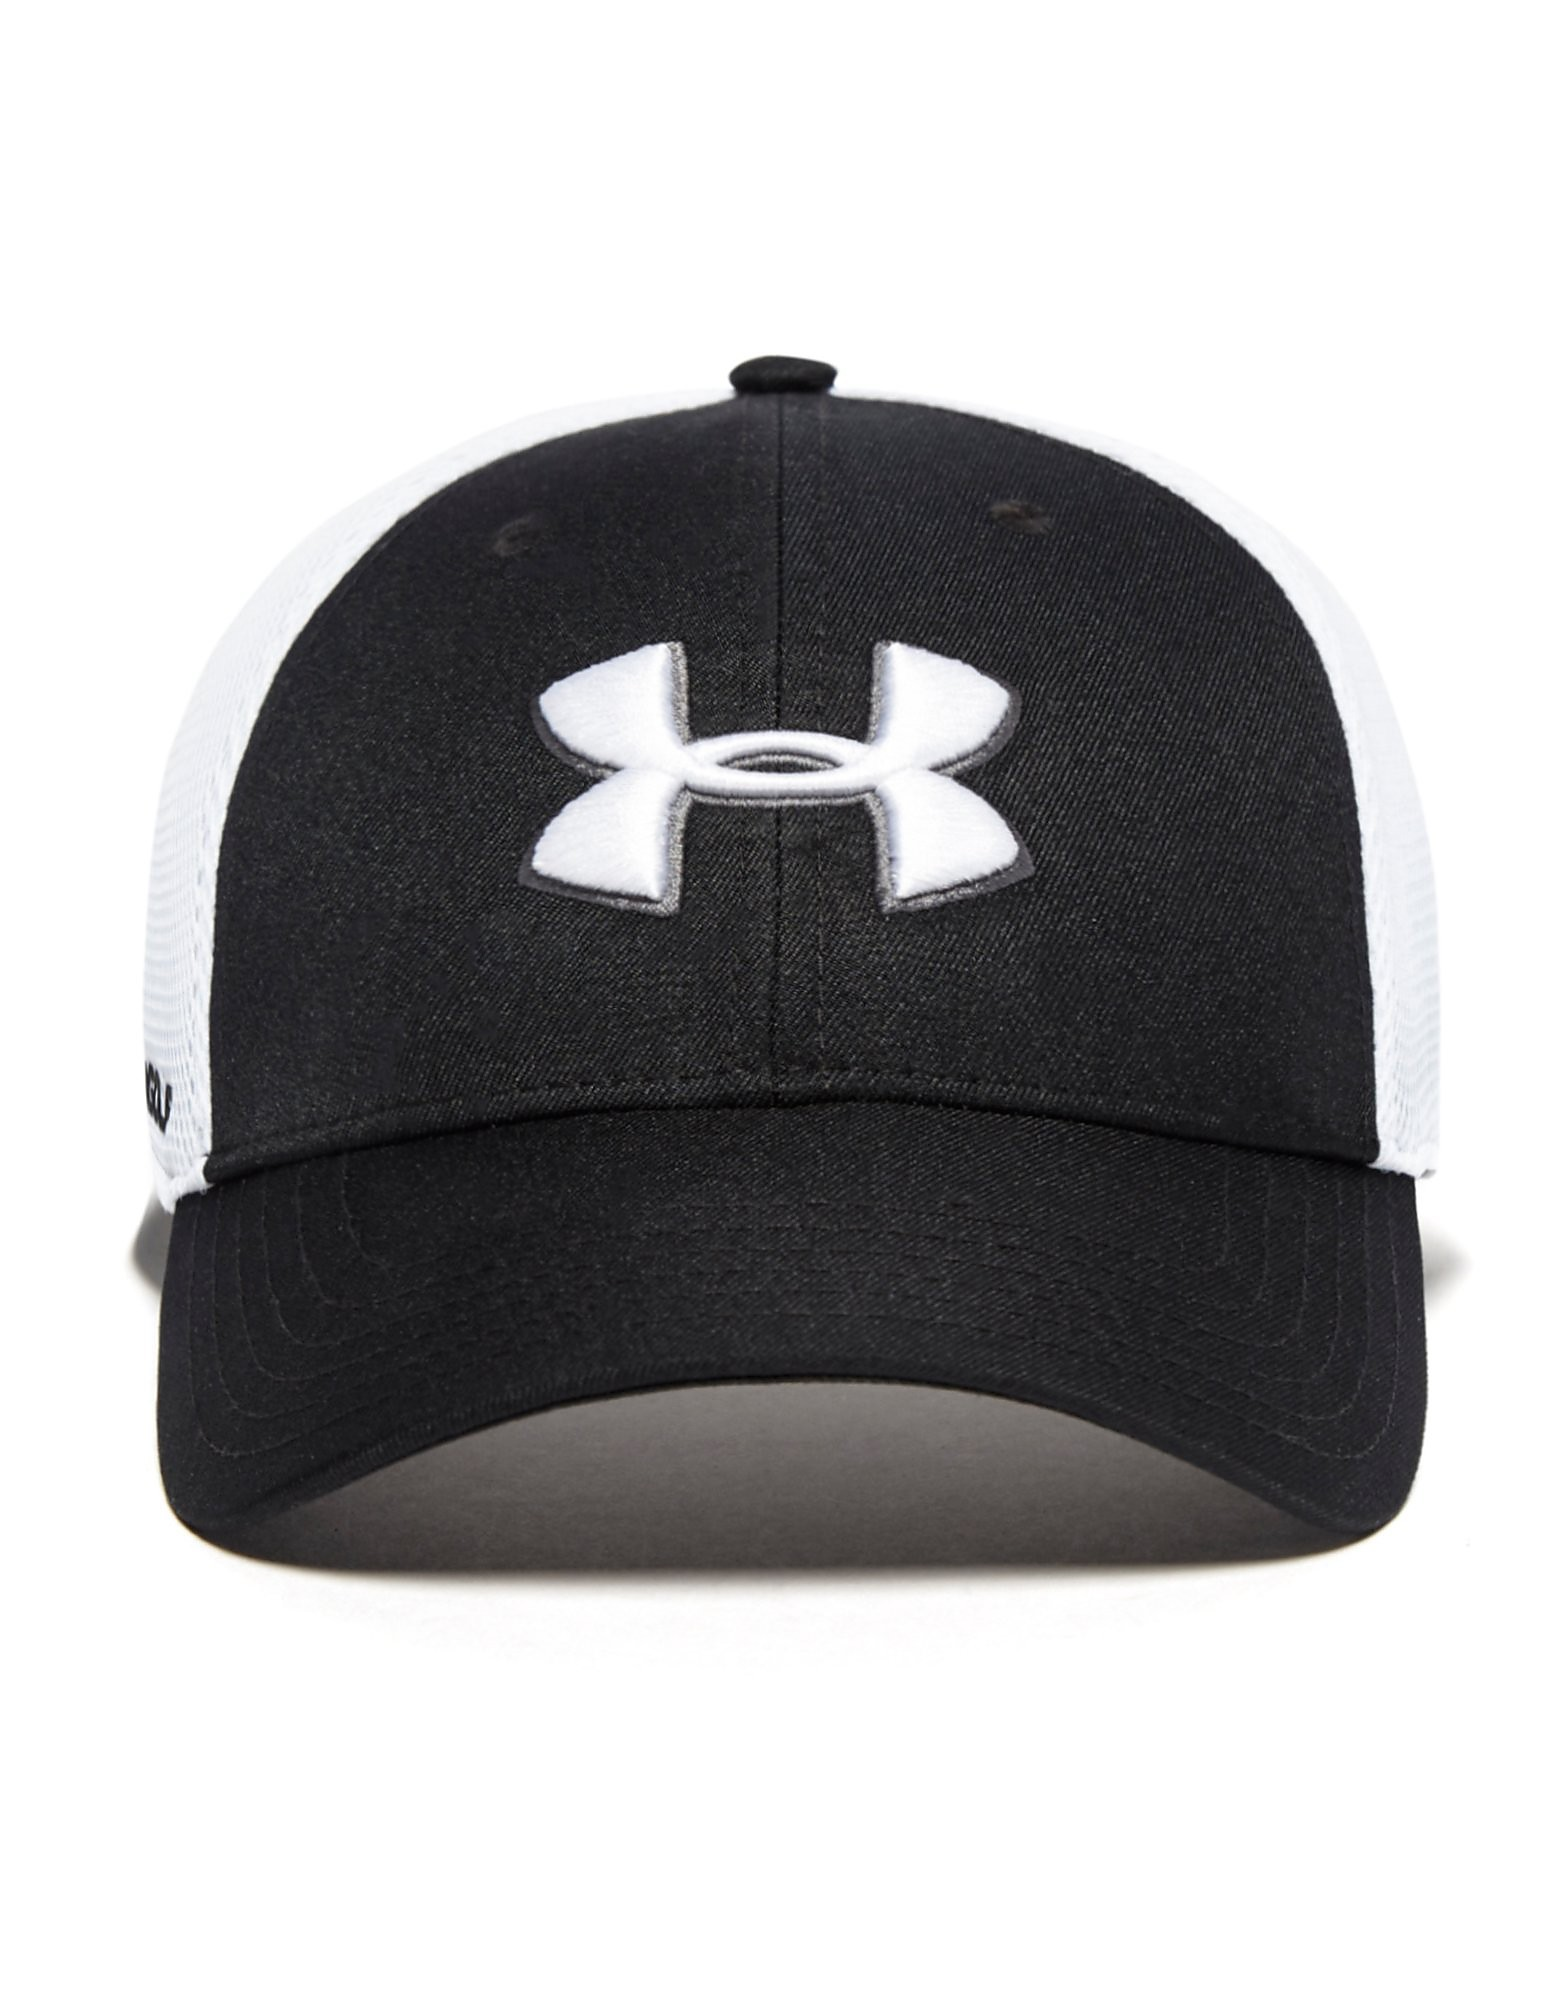 Under Armour Golf Mesh Stretch Cap